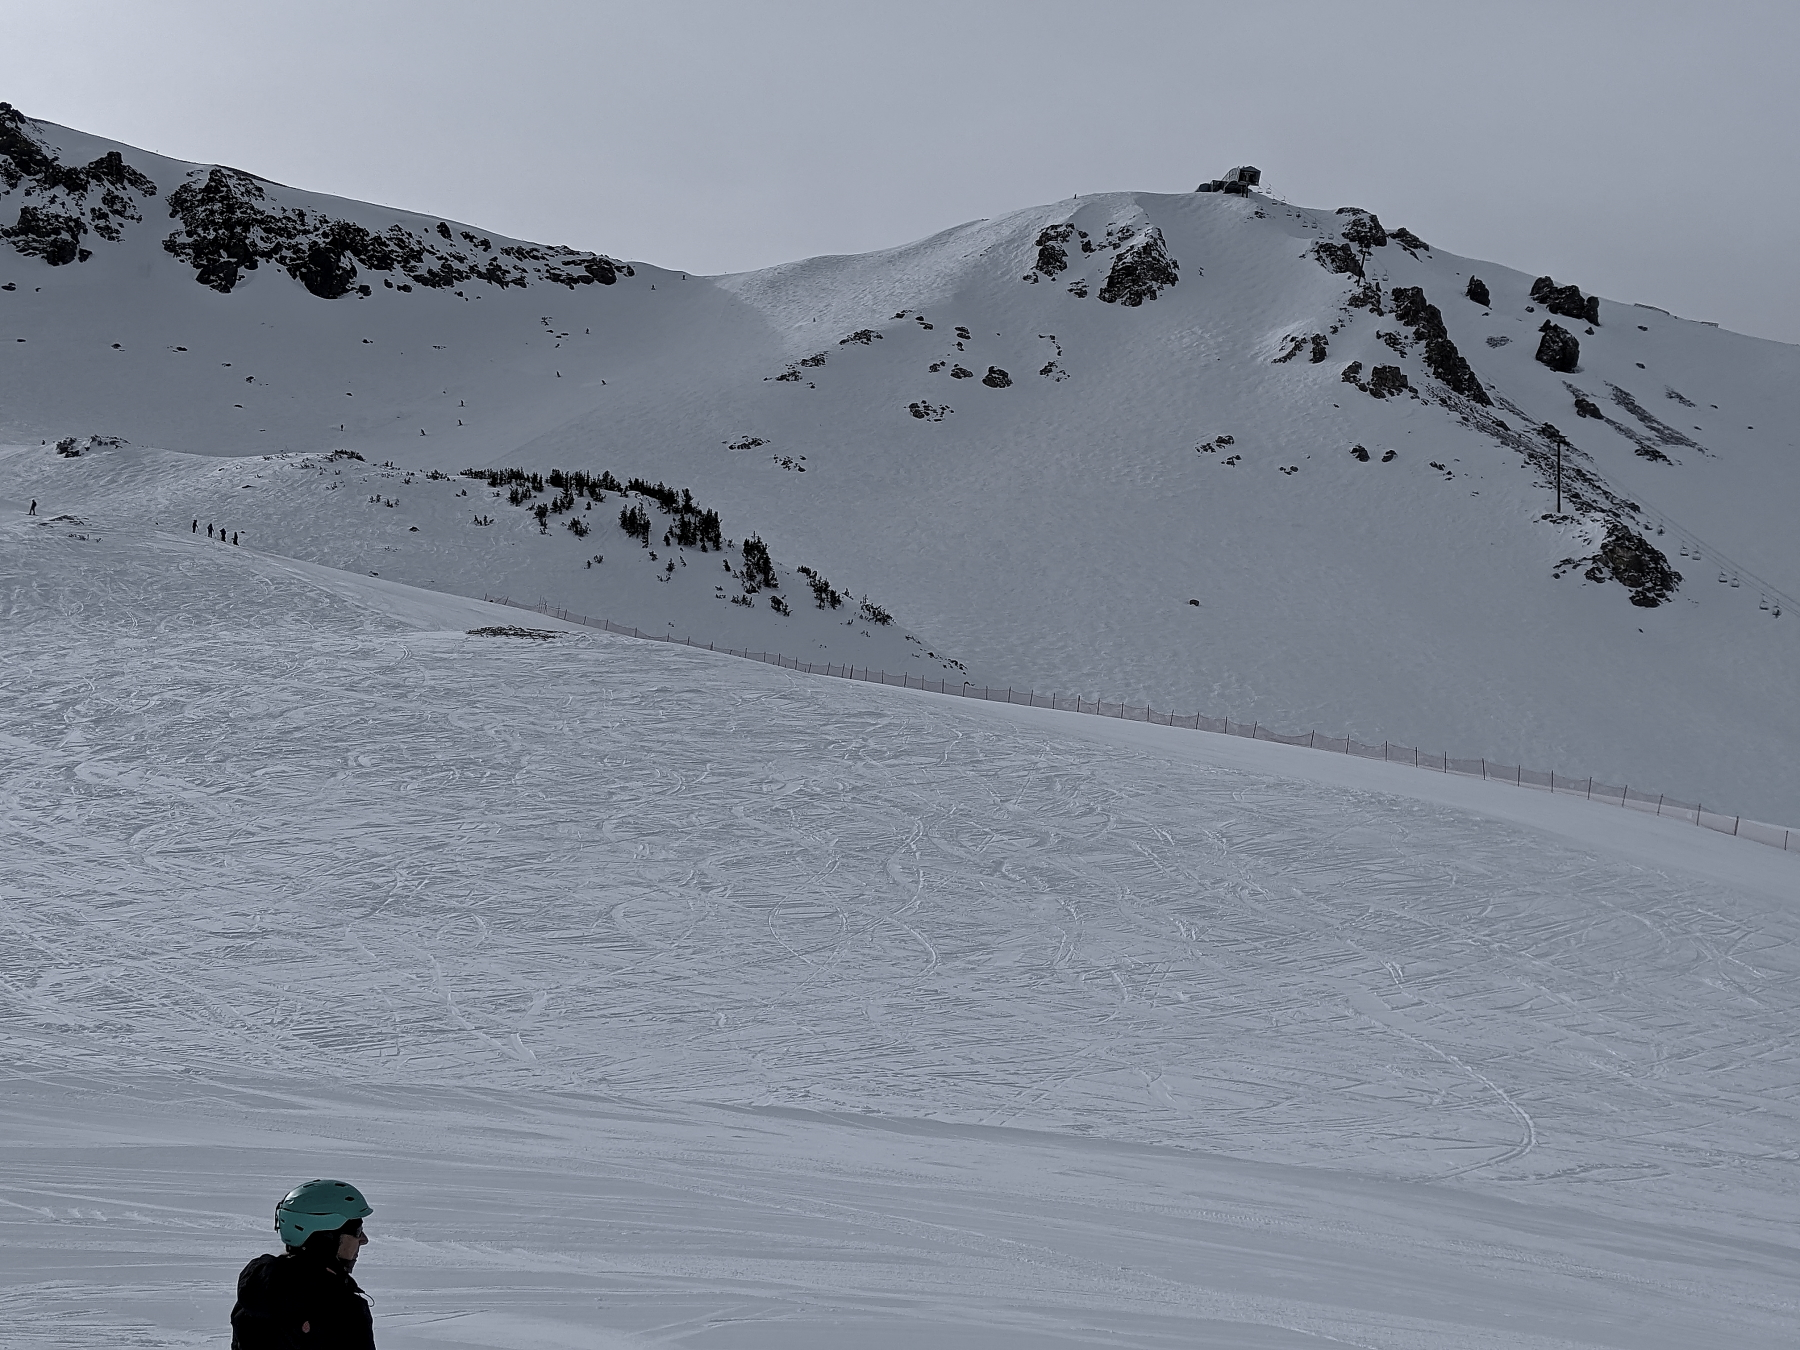 Cornice, the Drop Outs and the Top of Chair 23